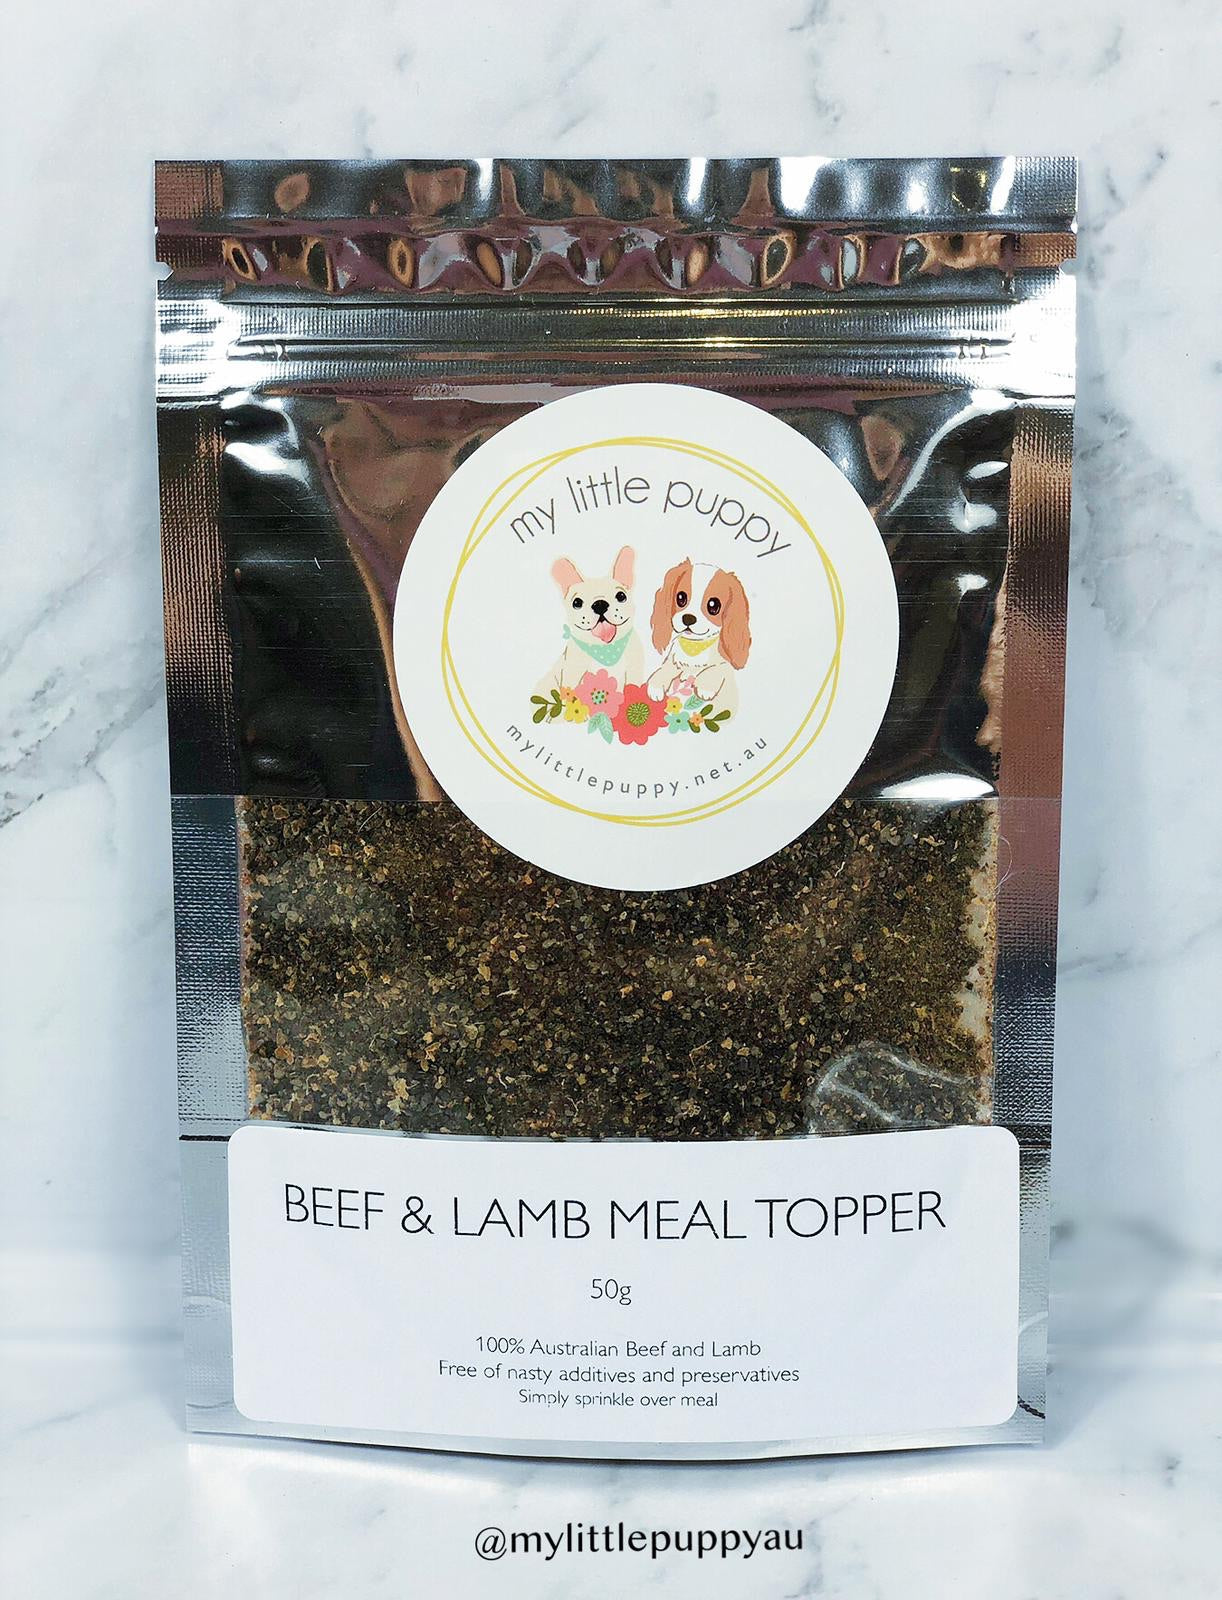 BEEF & LAMB MEAL TOPPER